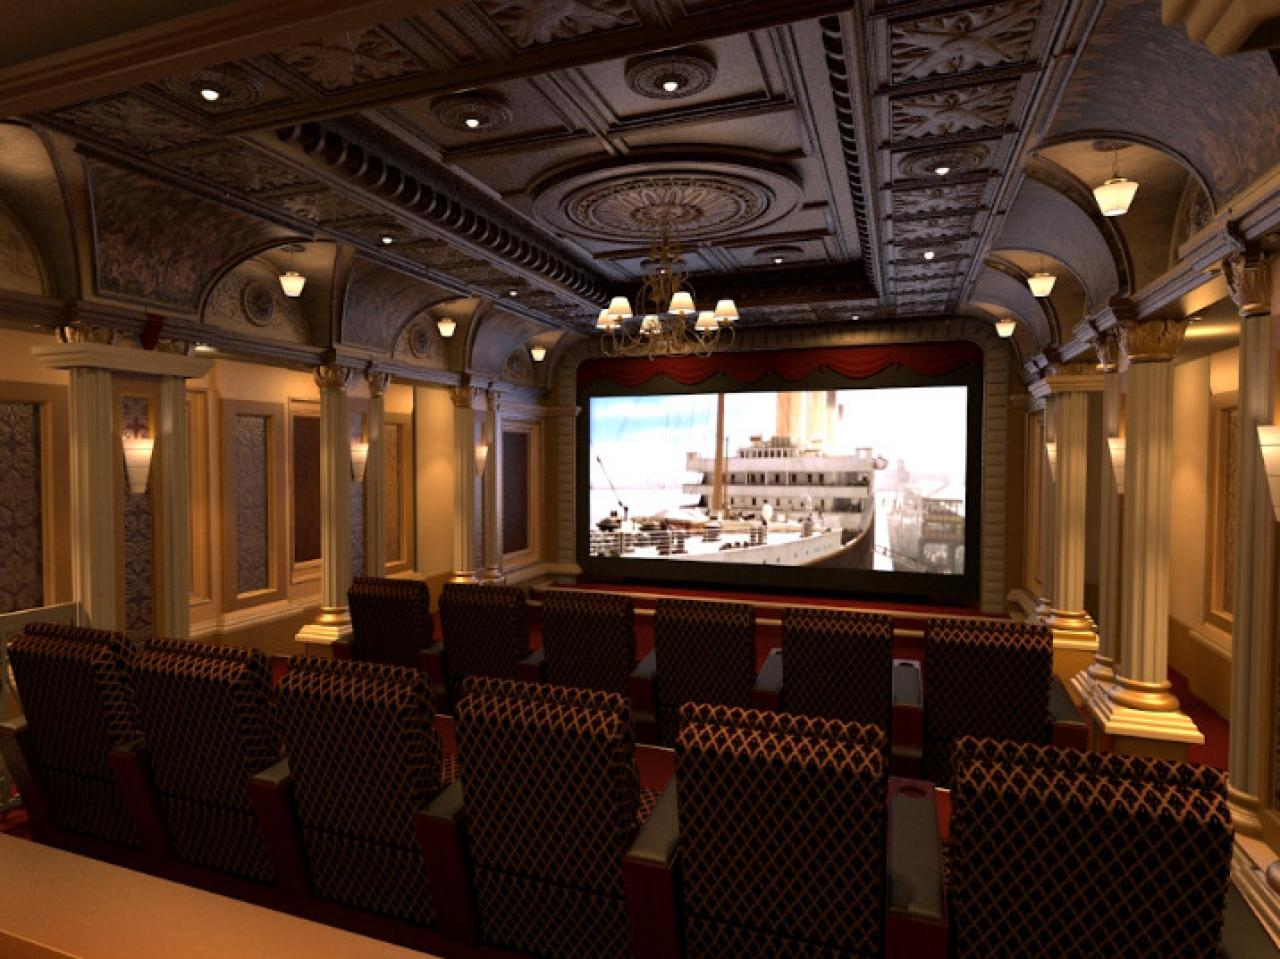 lord of the theaters - Home Theater Rooms Design Ideas